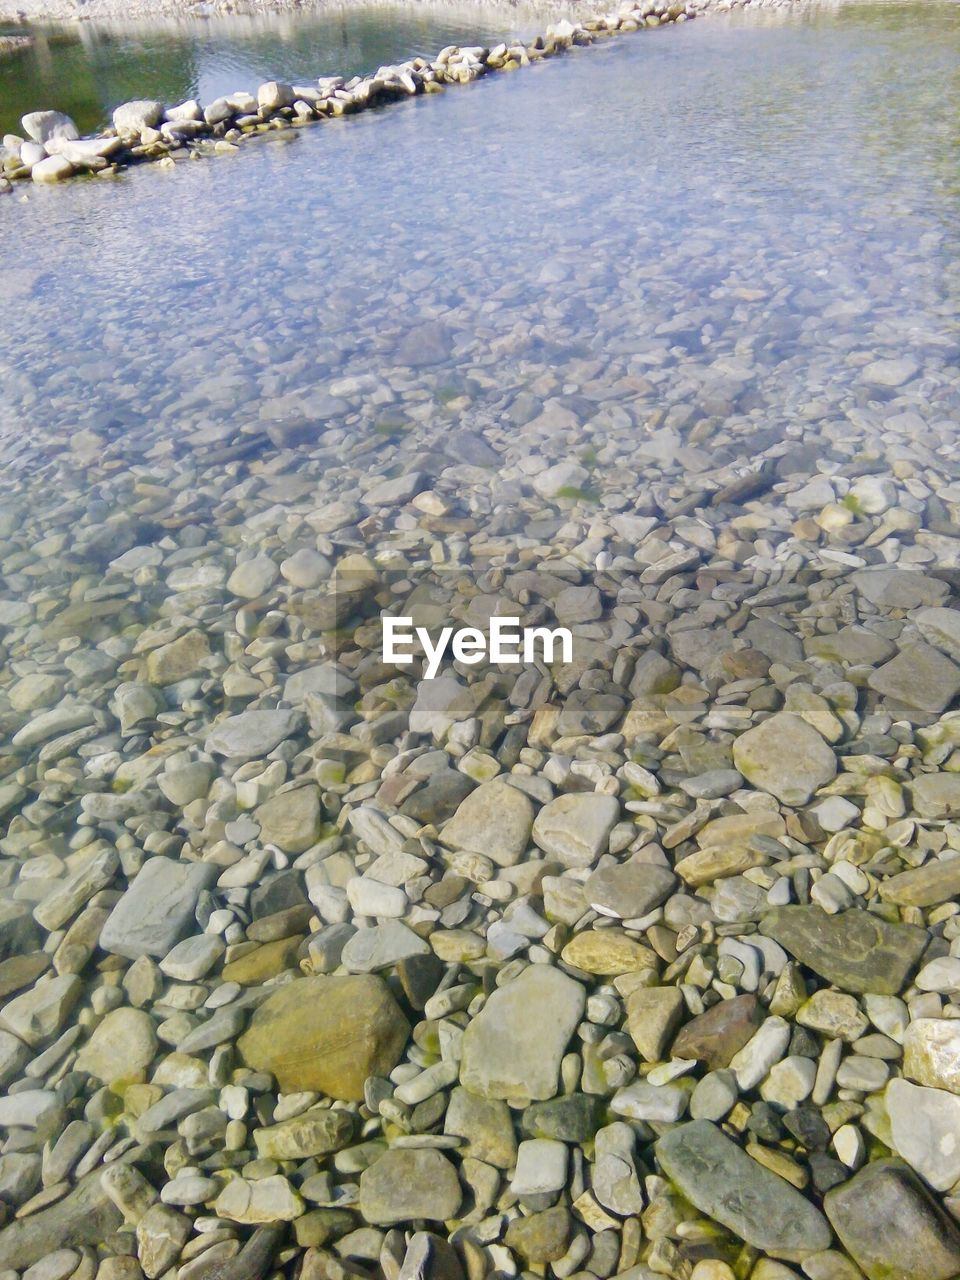 water, no people, day, nature, outdoors, pebble, beauty in nature, close-up, animal themes